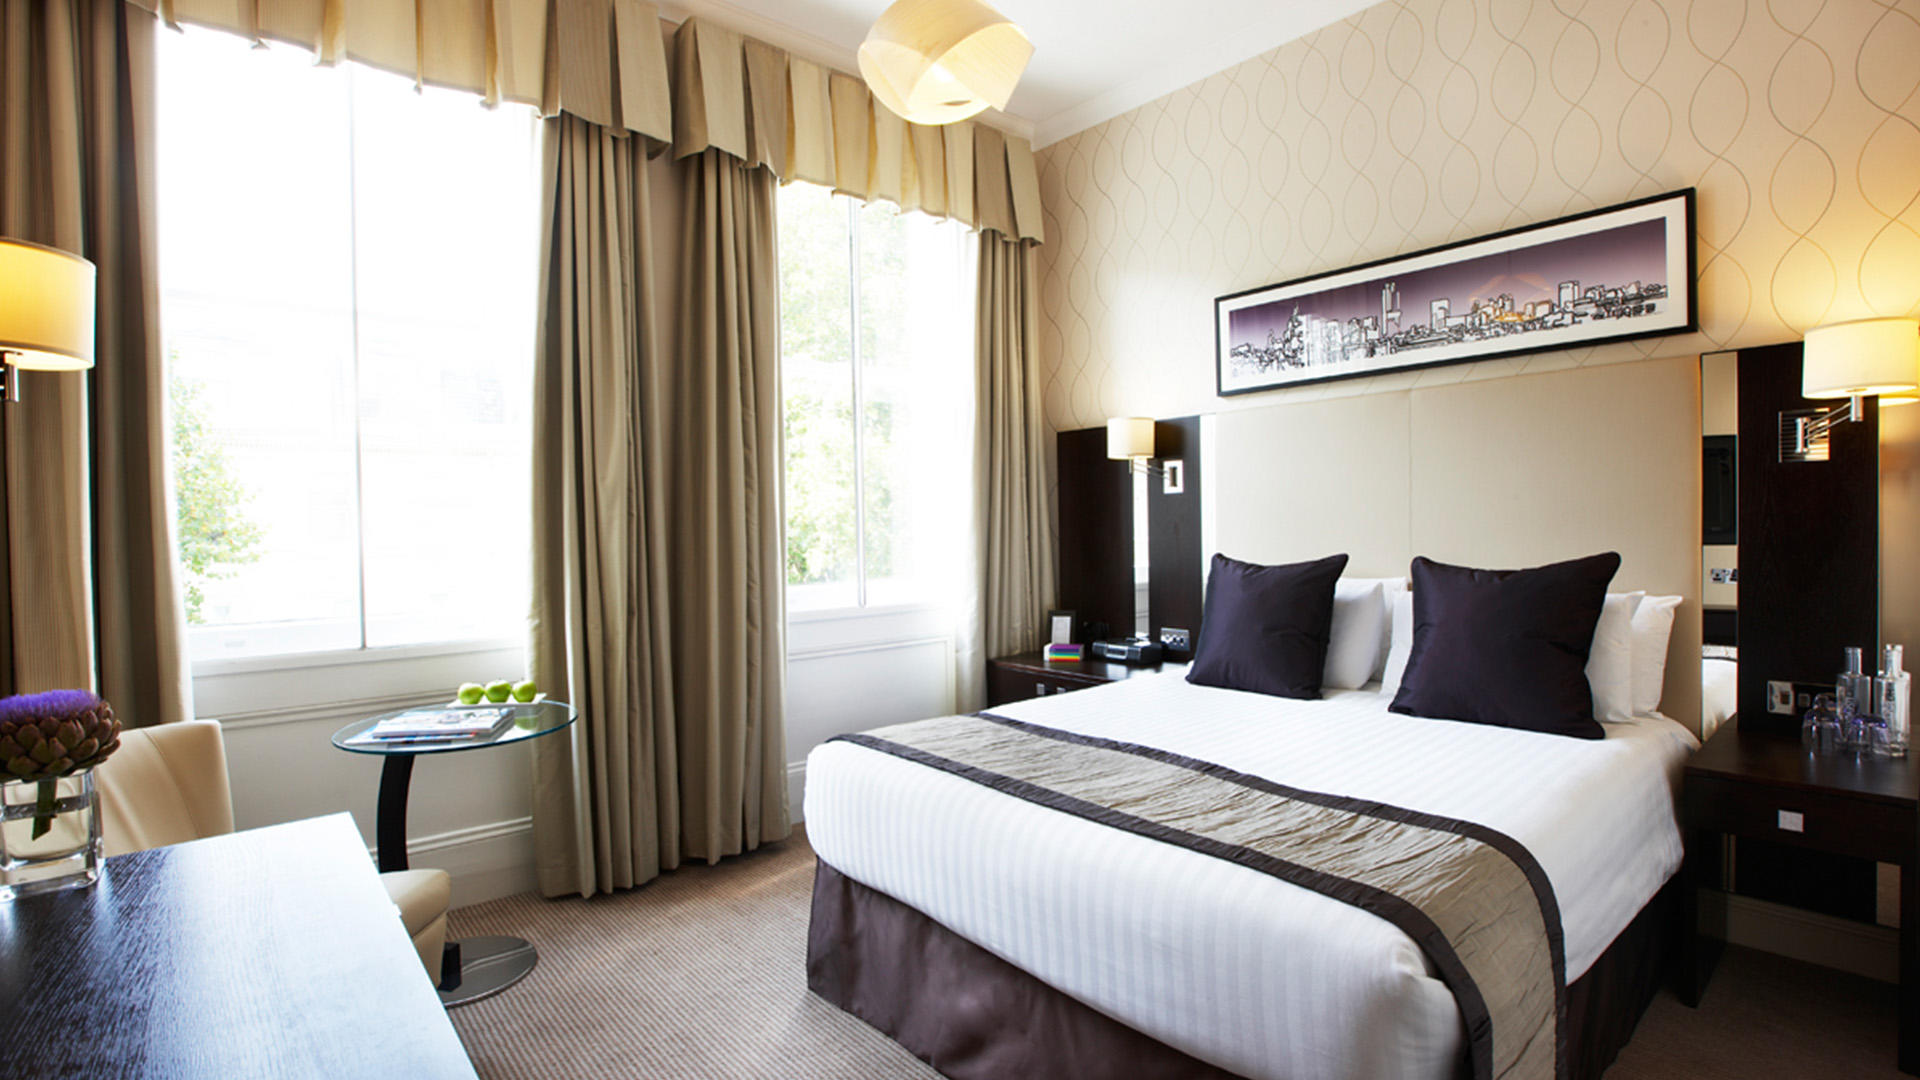 rydges kensington hotel london gha. Black Bedroom Furniture Sets. Home Design Ideas